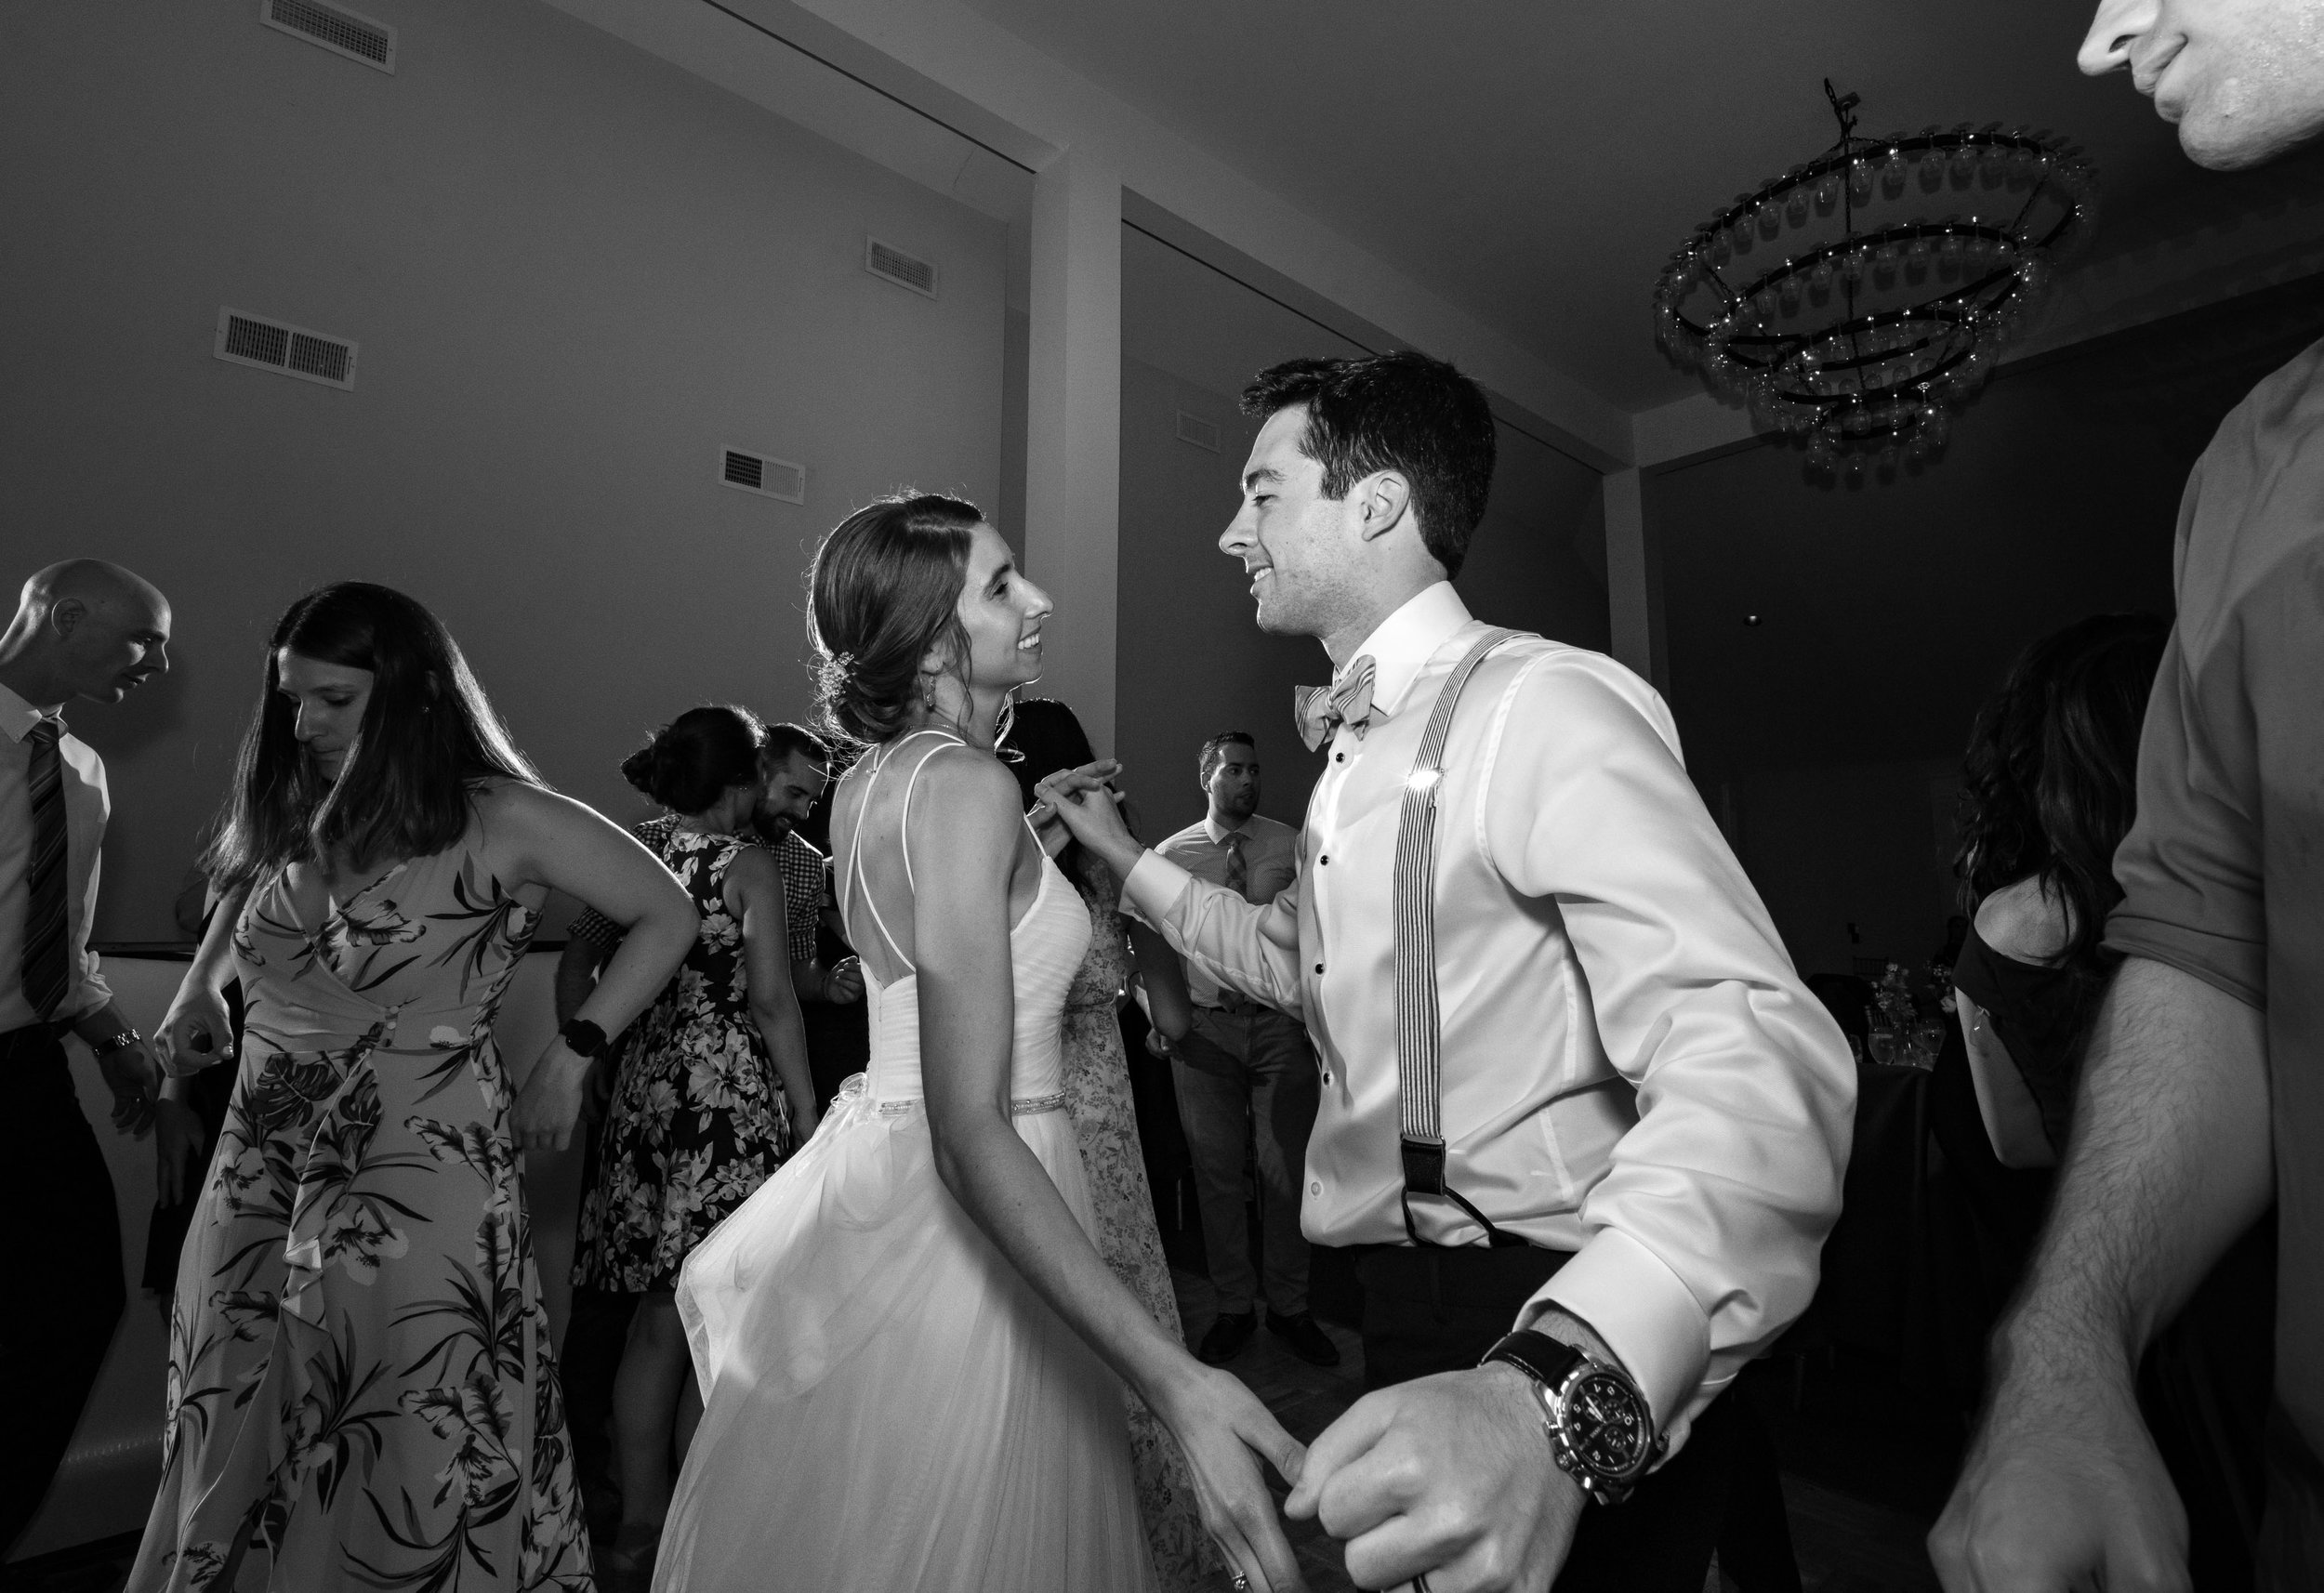 Last dance with the bride and groom at Springfield Manor Winery and Distillery